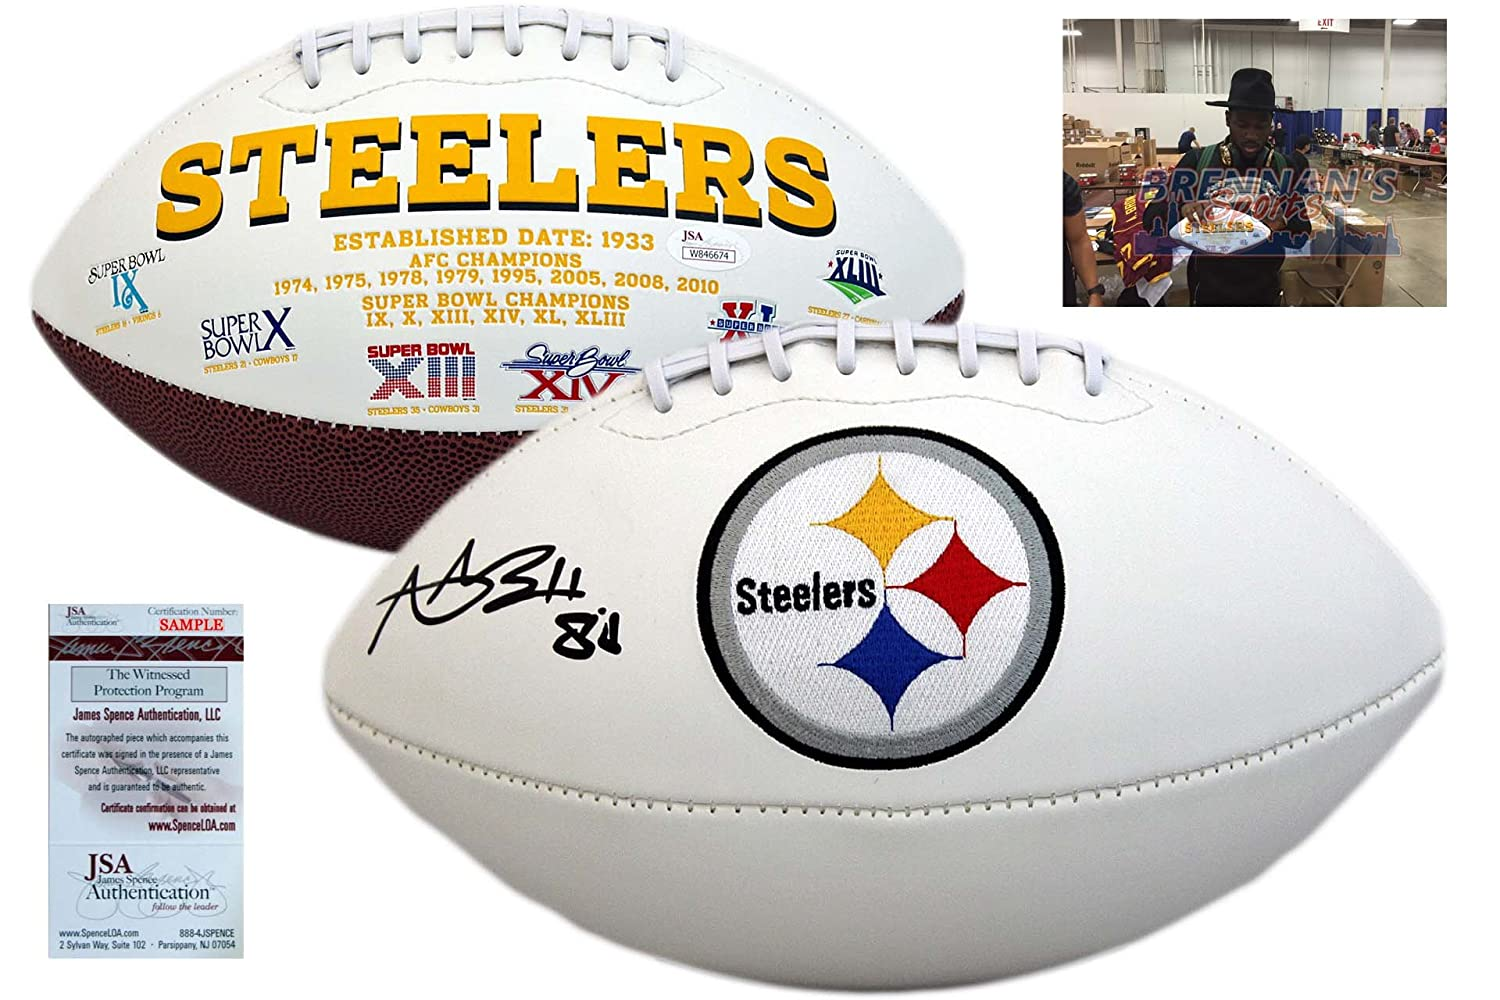 Antonio Brown Autographed Signed Pittsburgh Steelers Football - JSA Witnessed